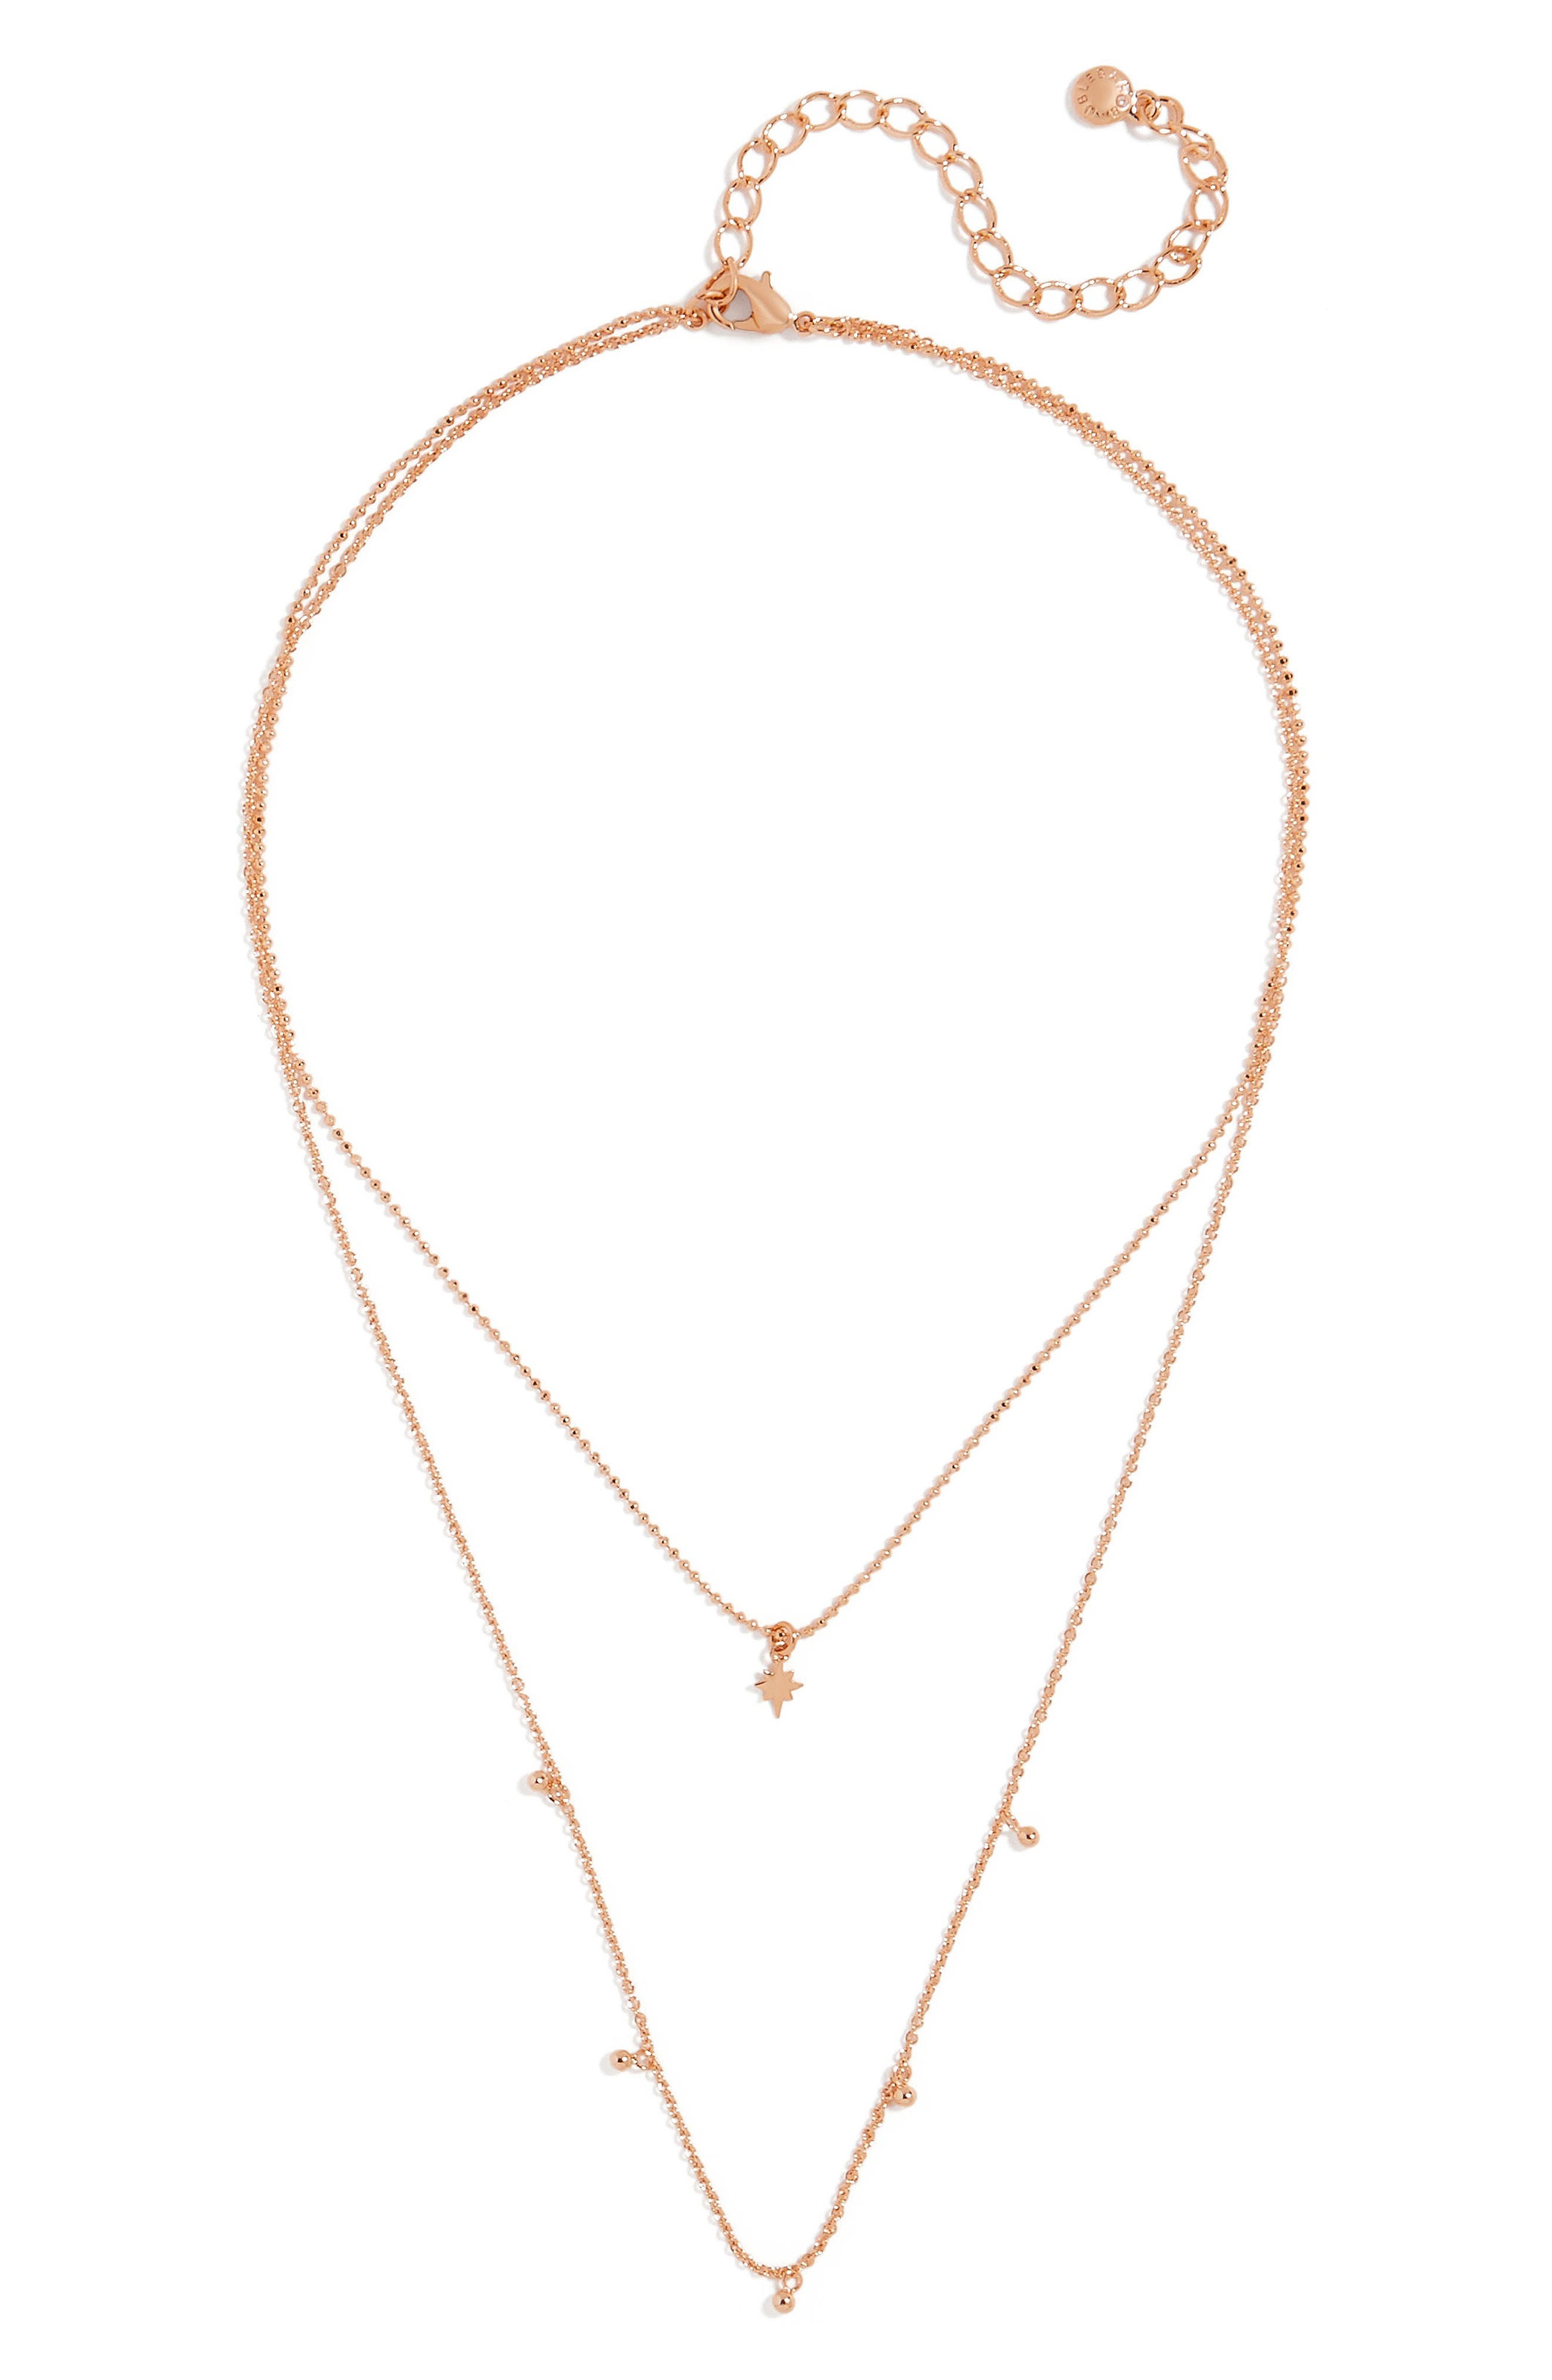 Multistrand Necklace,                         Main,                         color, Rose Gold